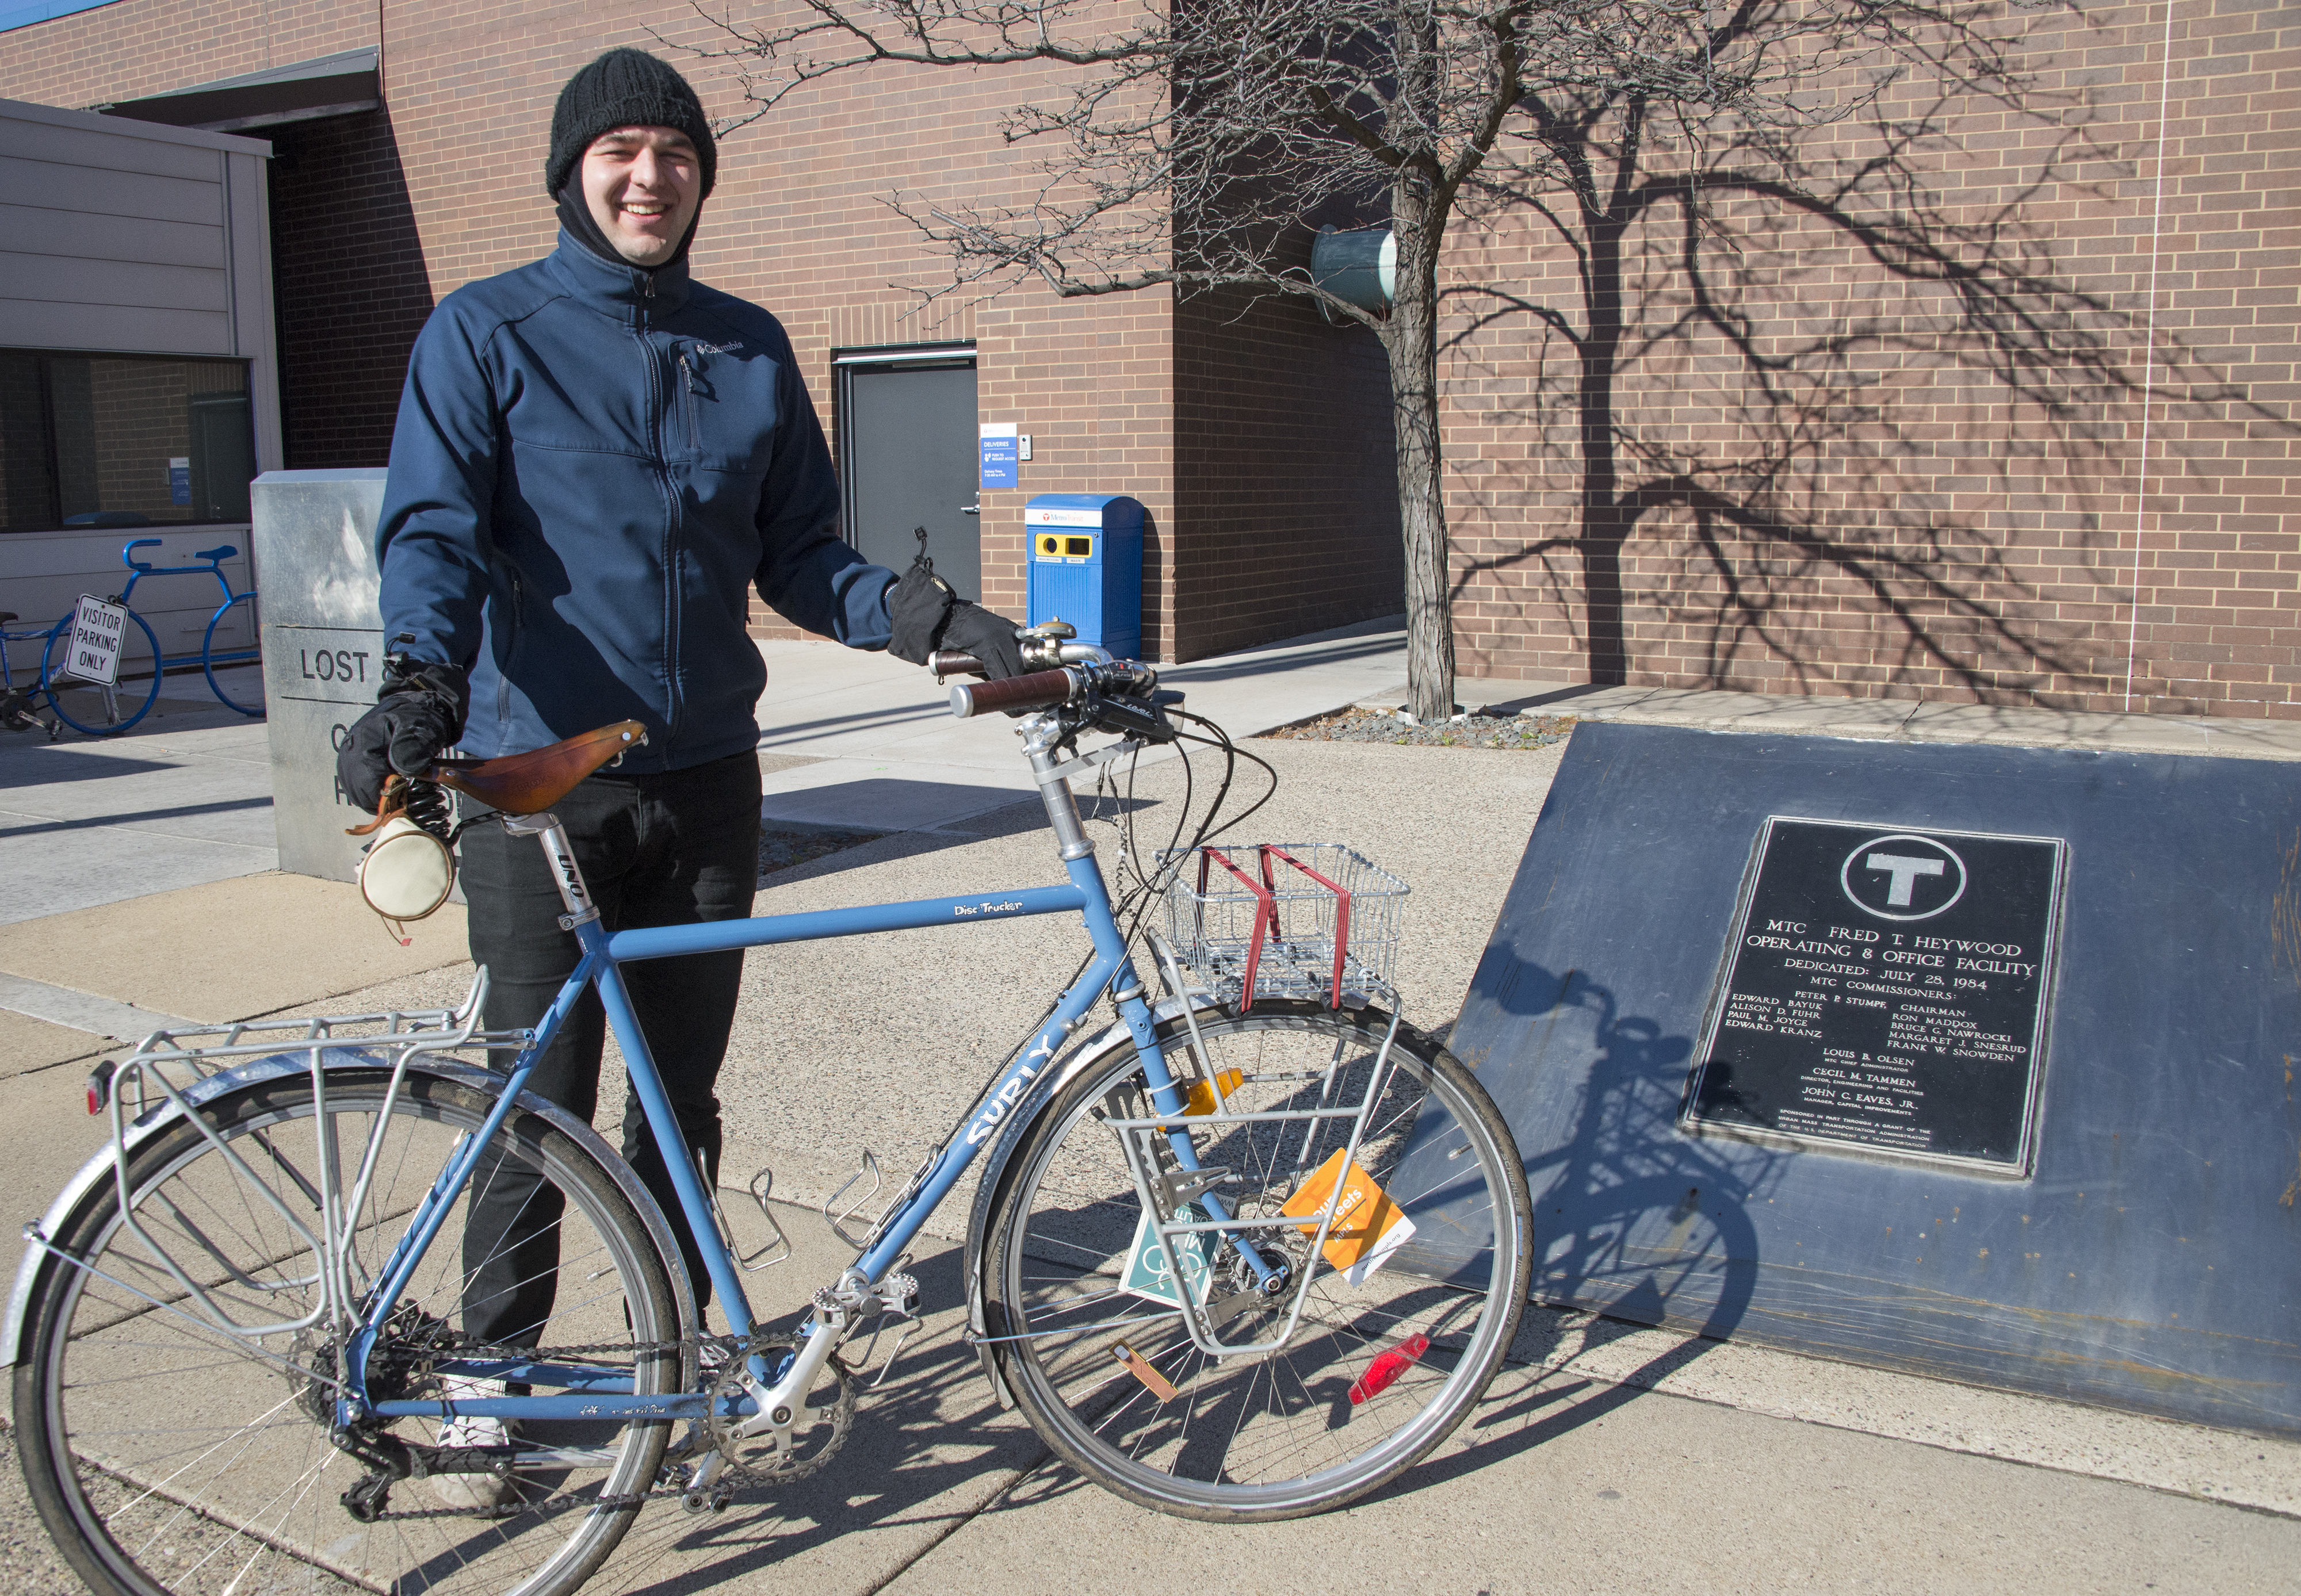 Jared Fette, Transit Information Center Representative, with his bike at the Heywood Office building in Minneapolis.